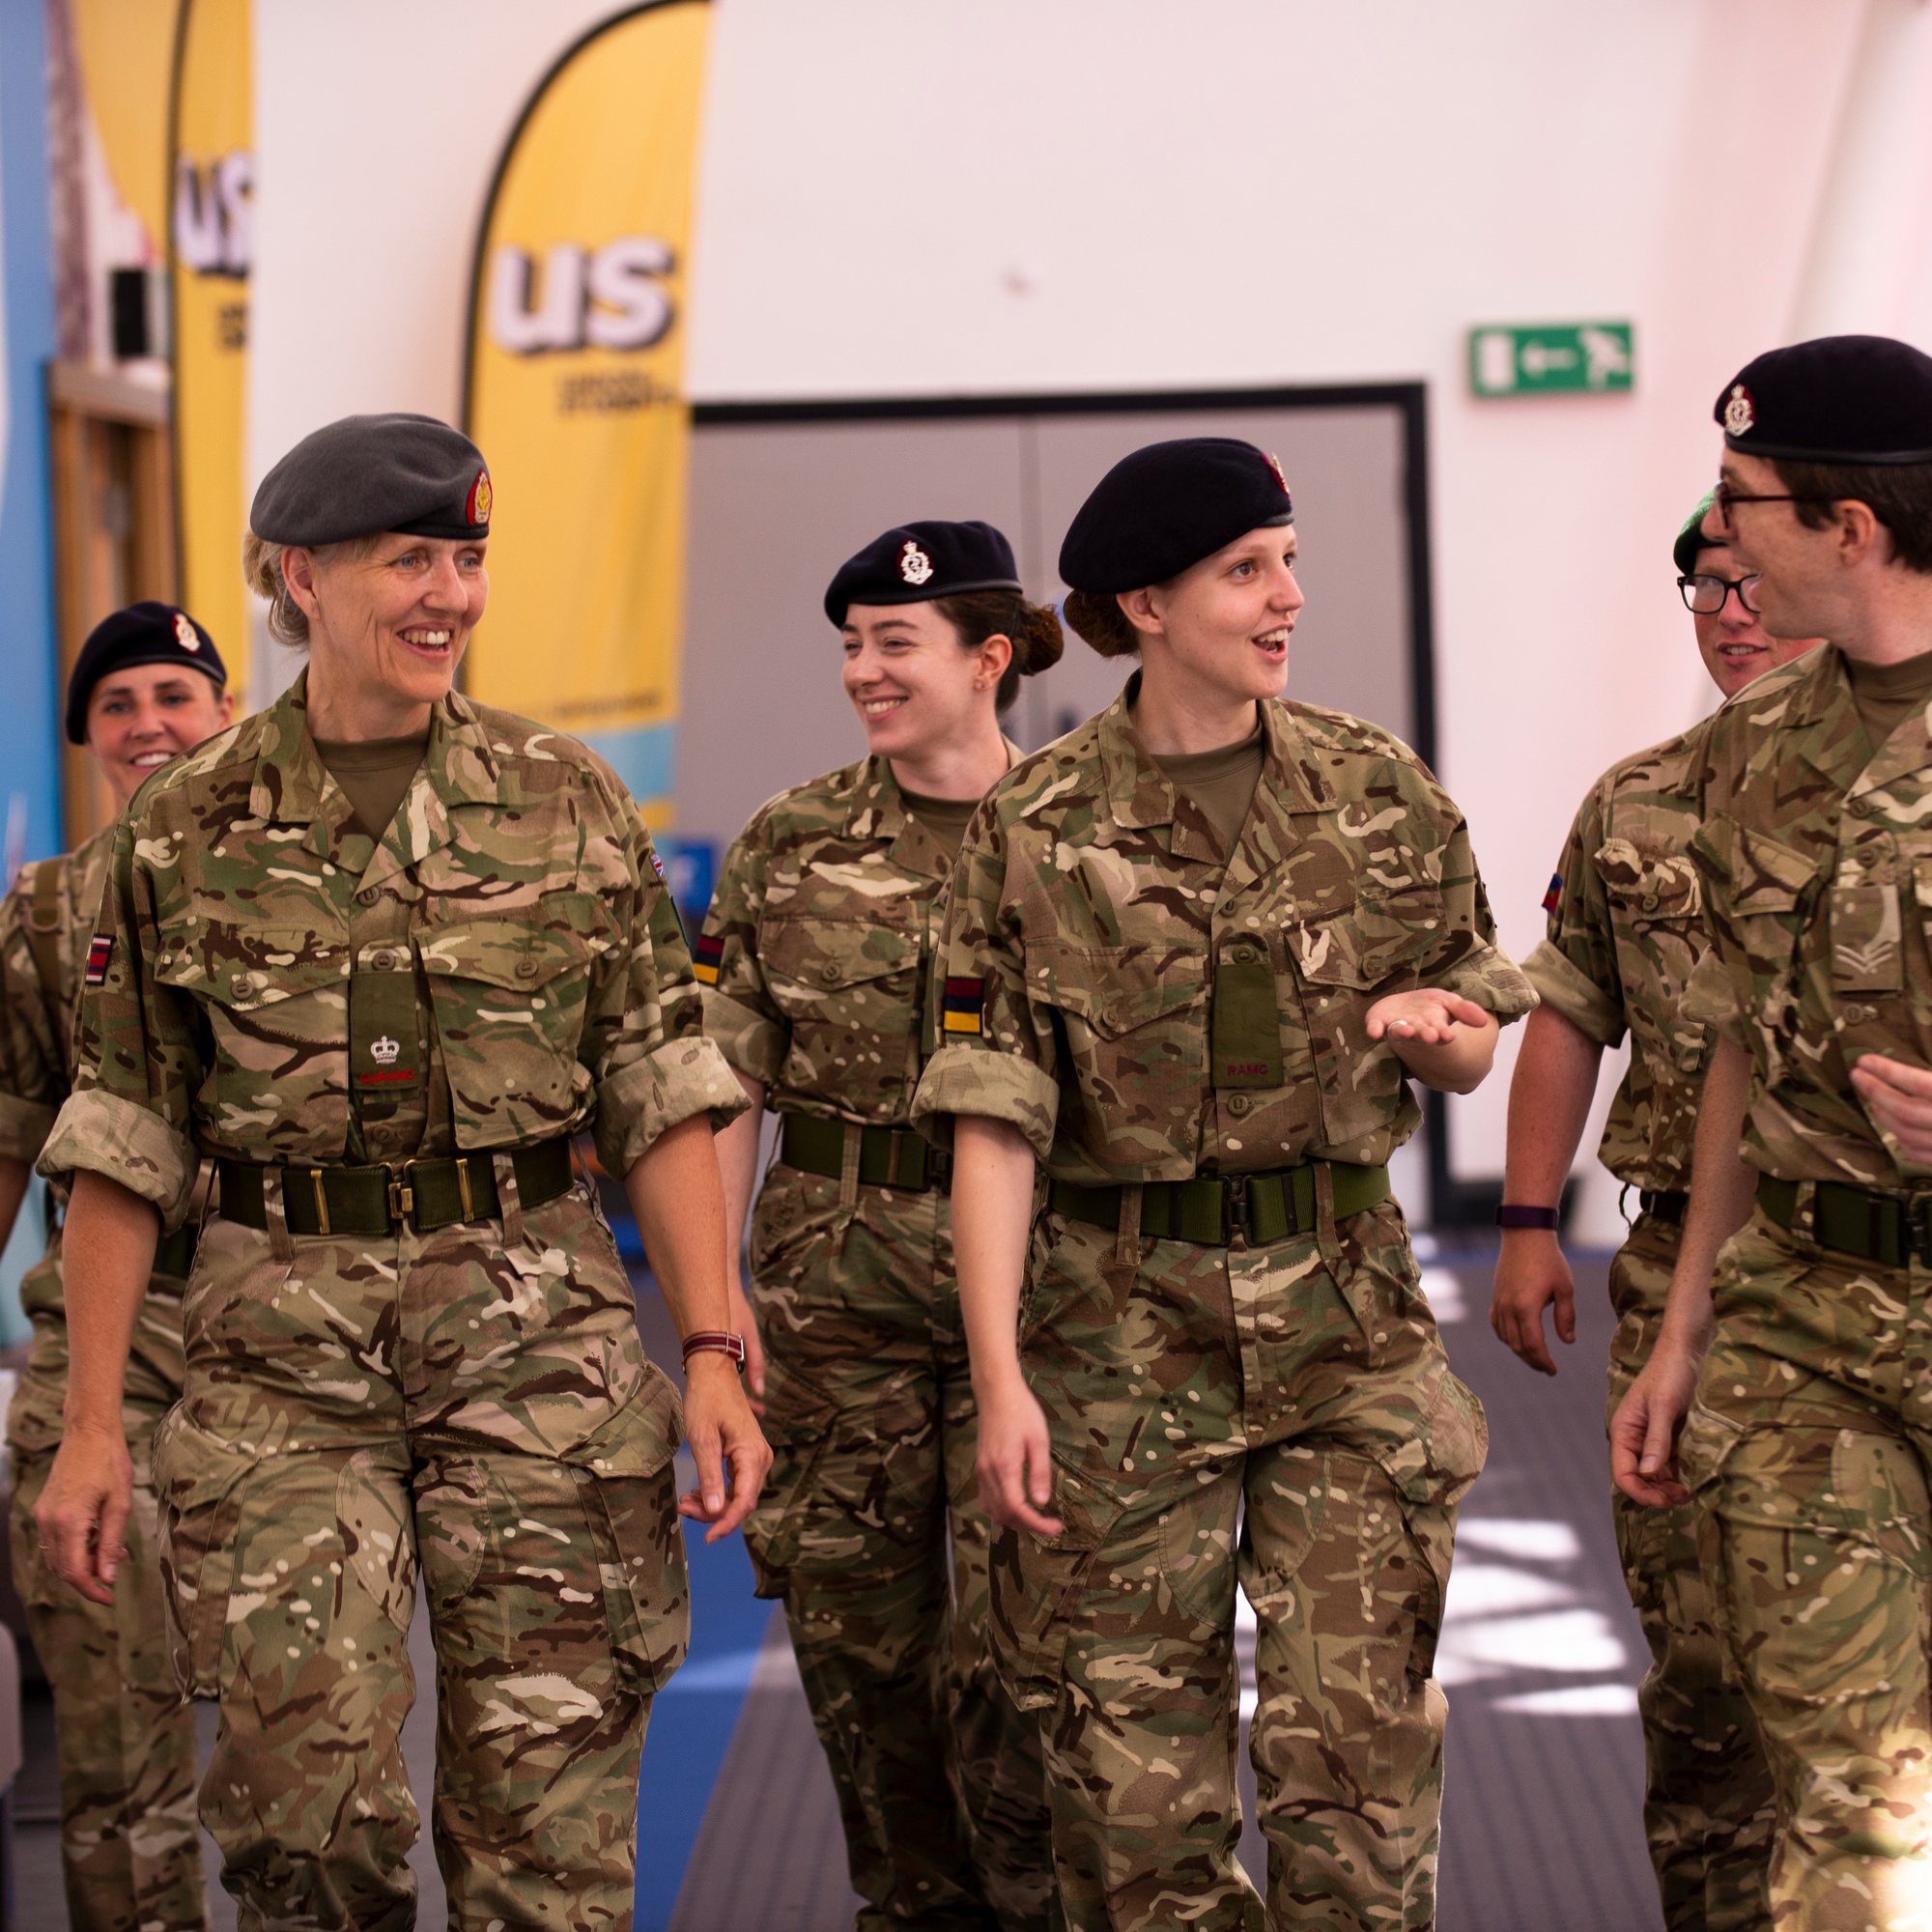 Six people from the army working through the University's atrium.